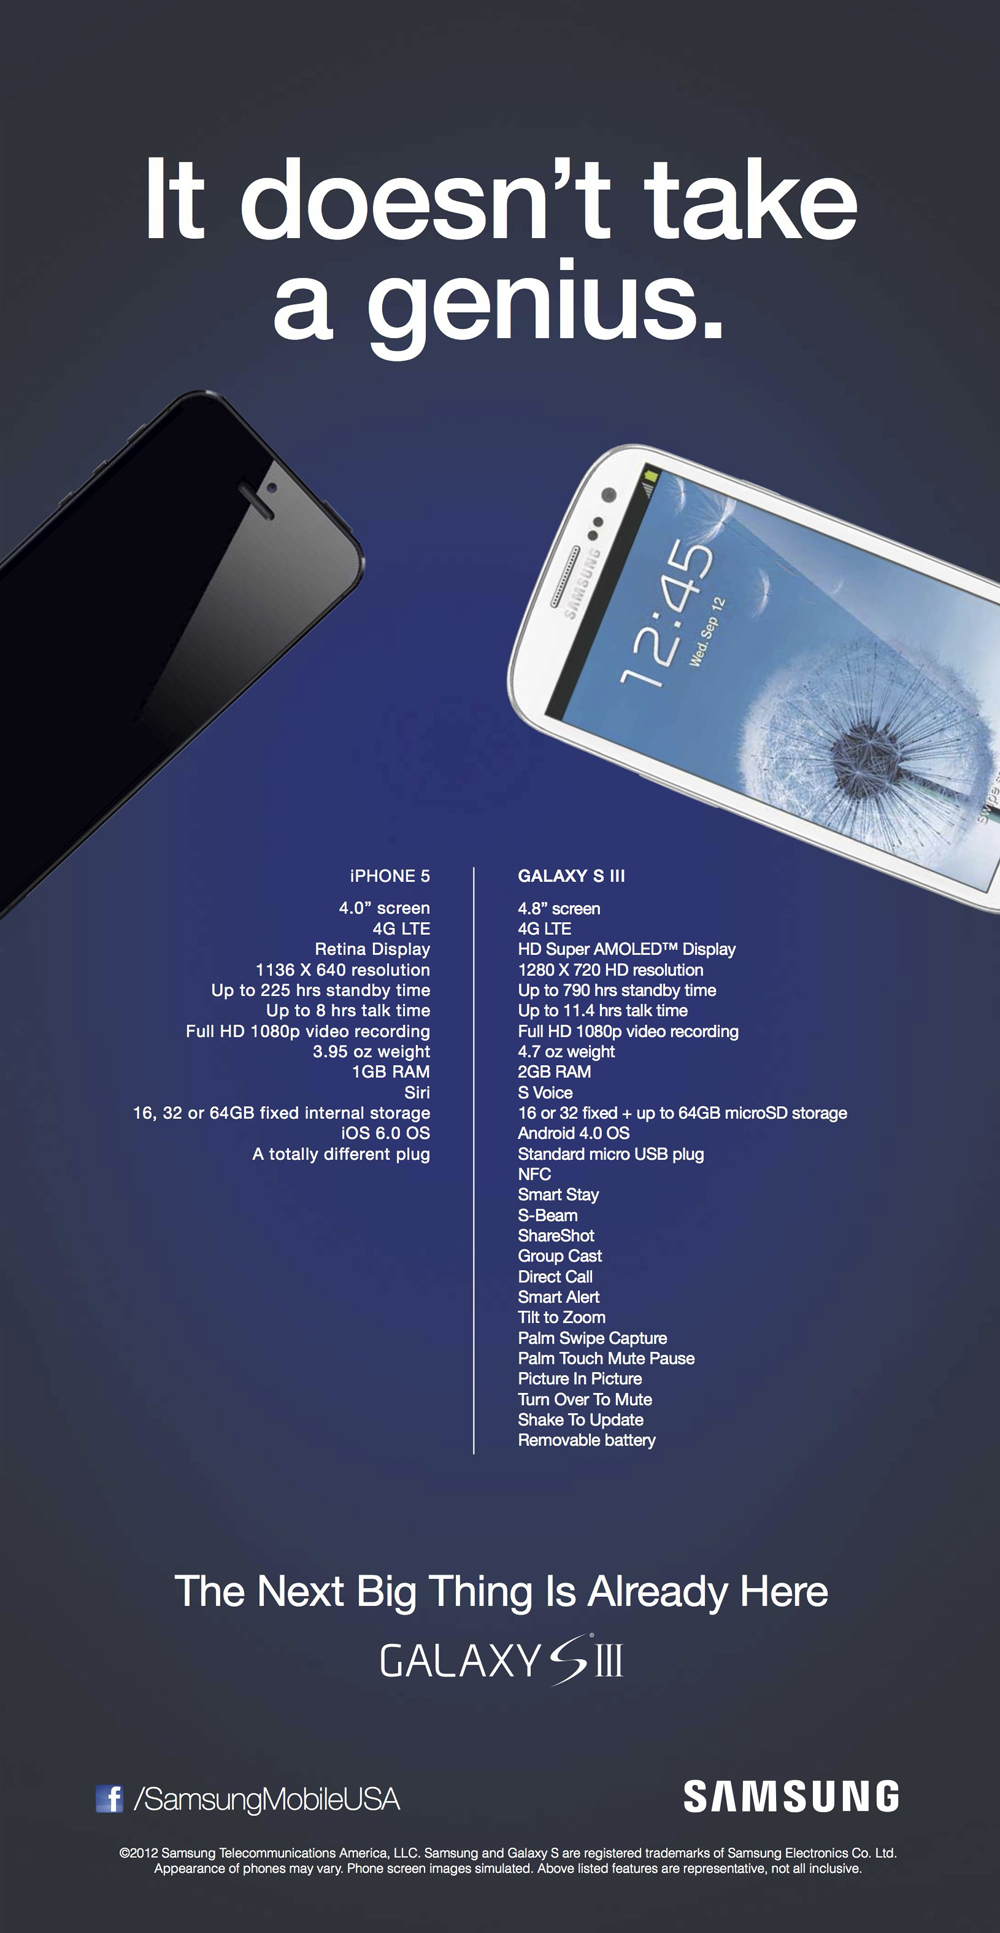 Samsung's Genius Attack Ad On iPhone 5